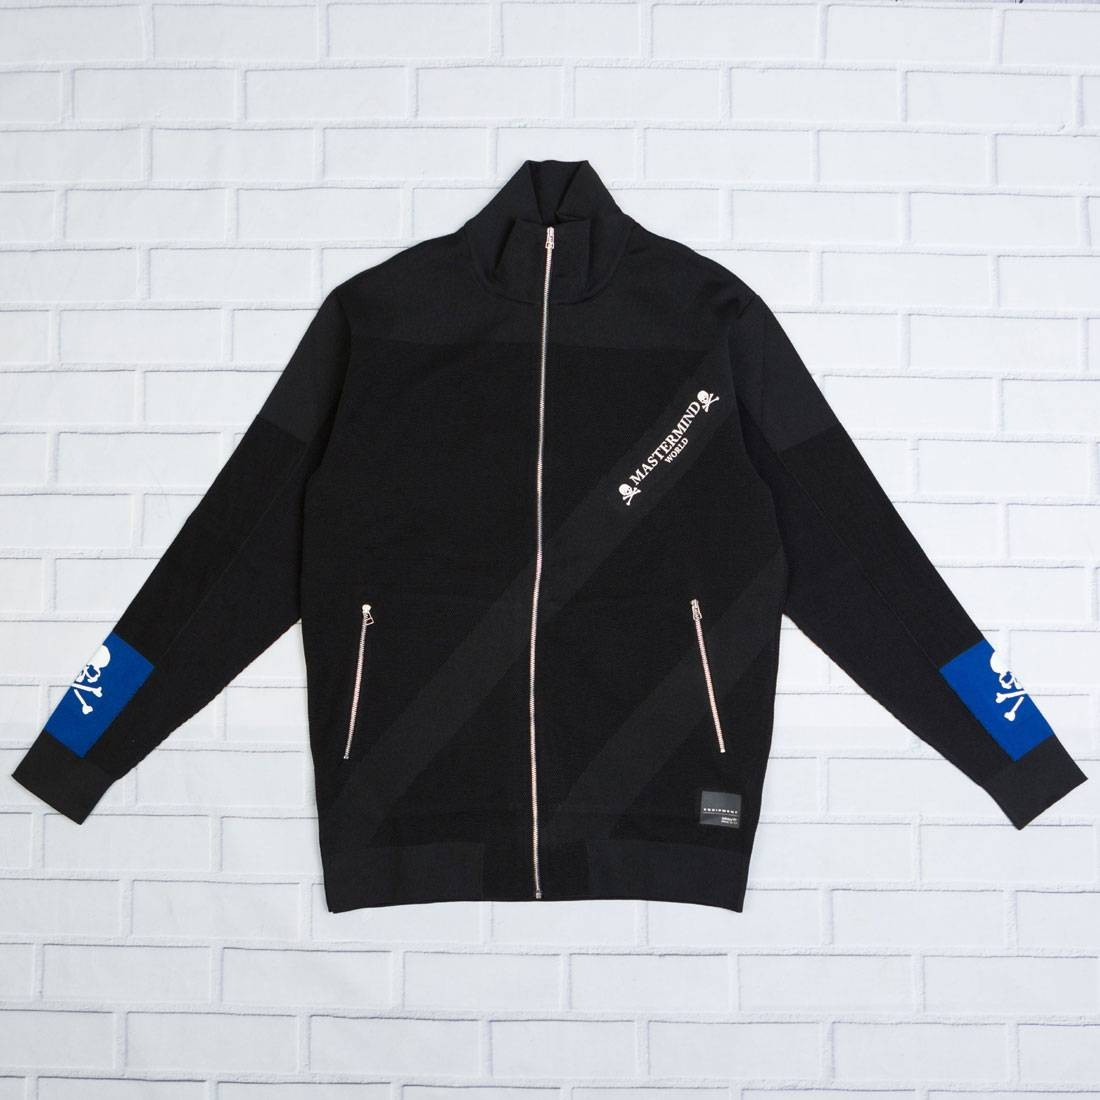 adidas x Mastermind World Track Top Jacket